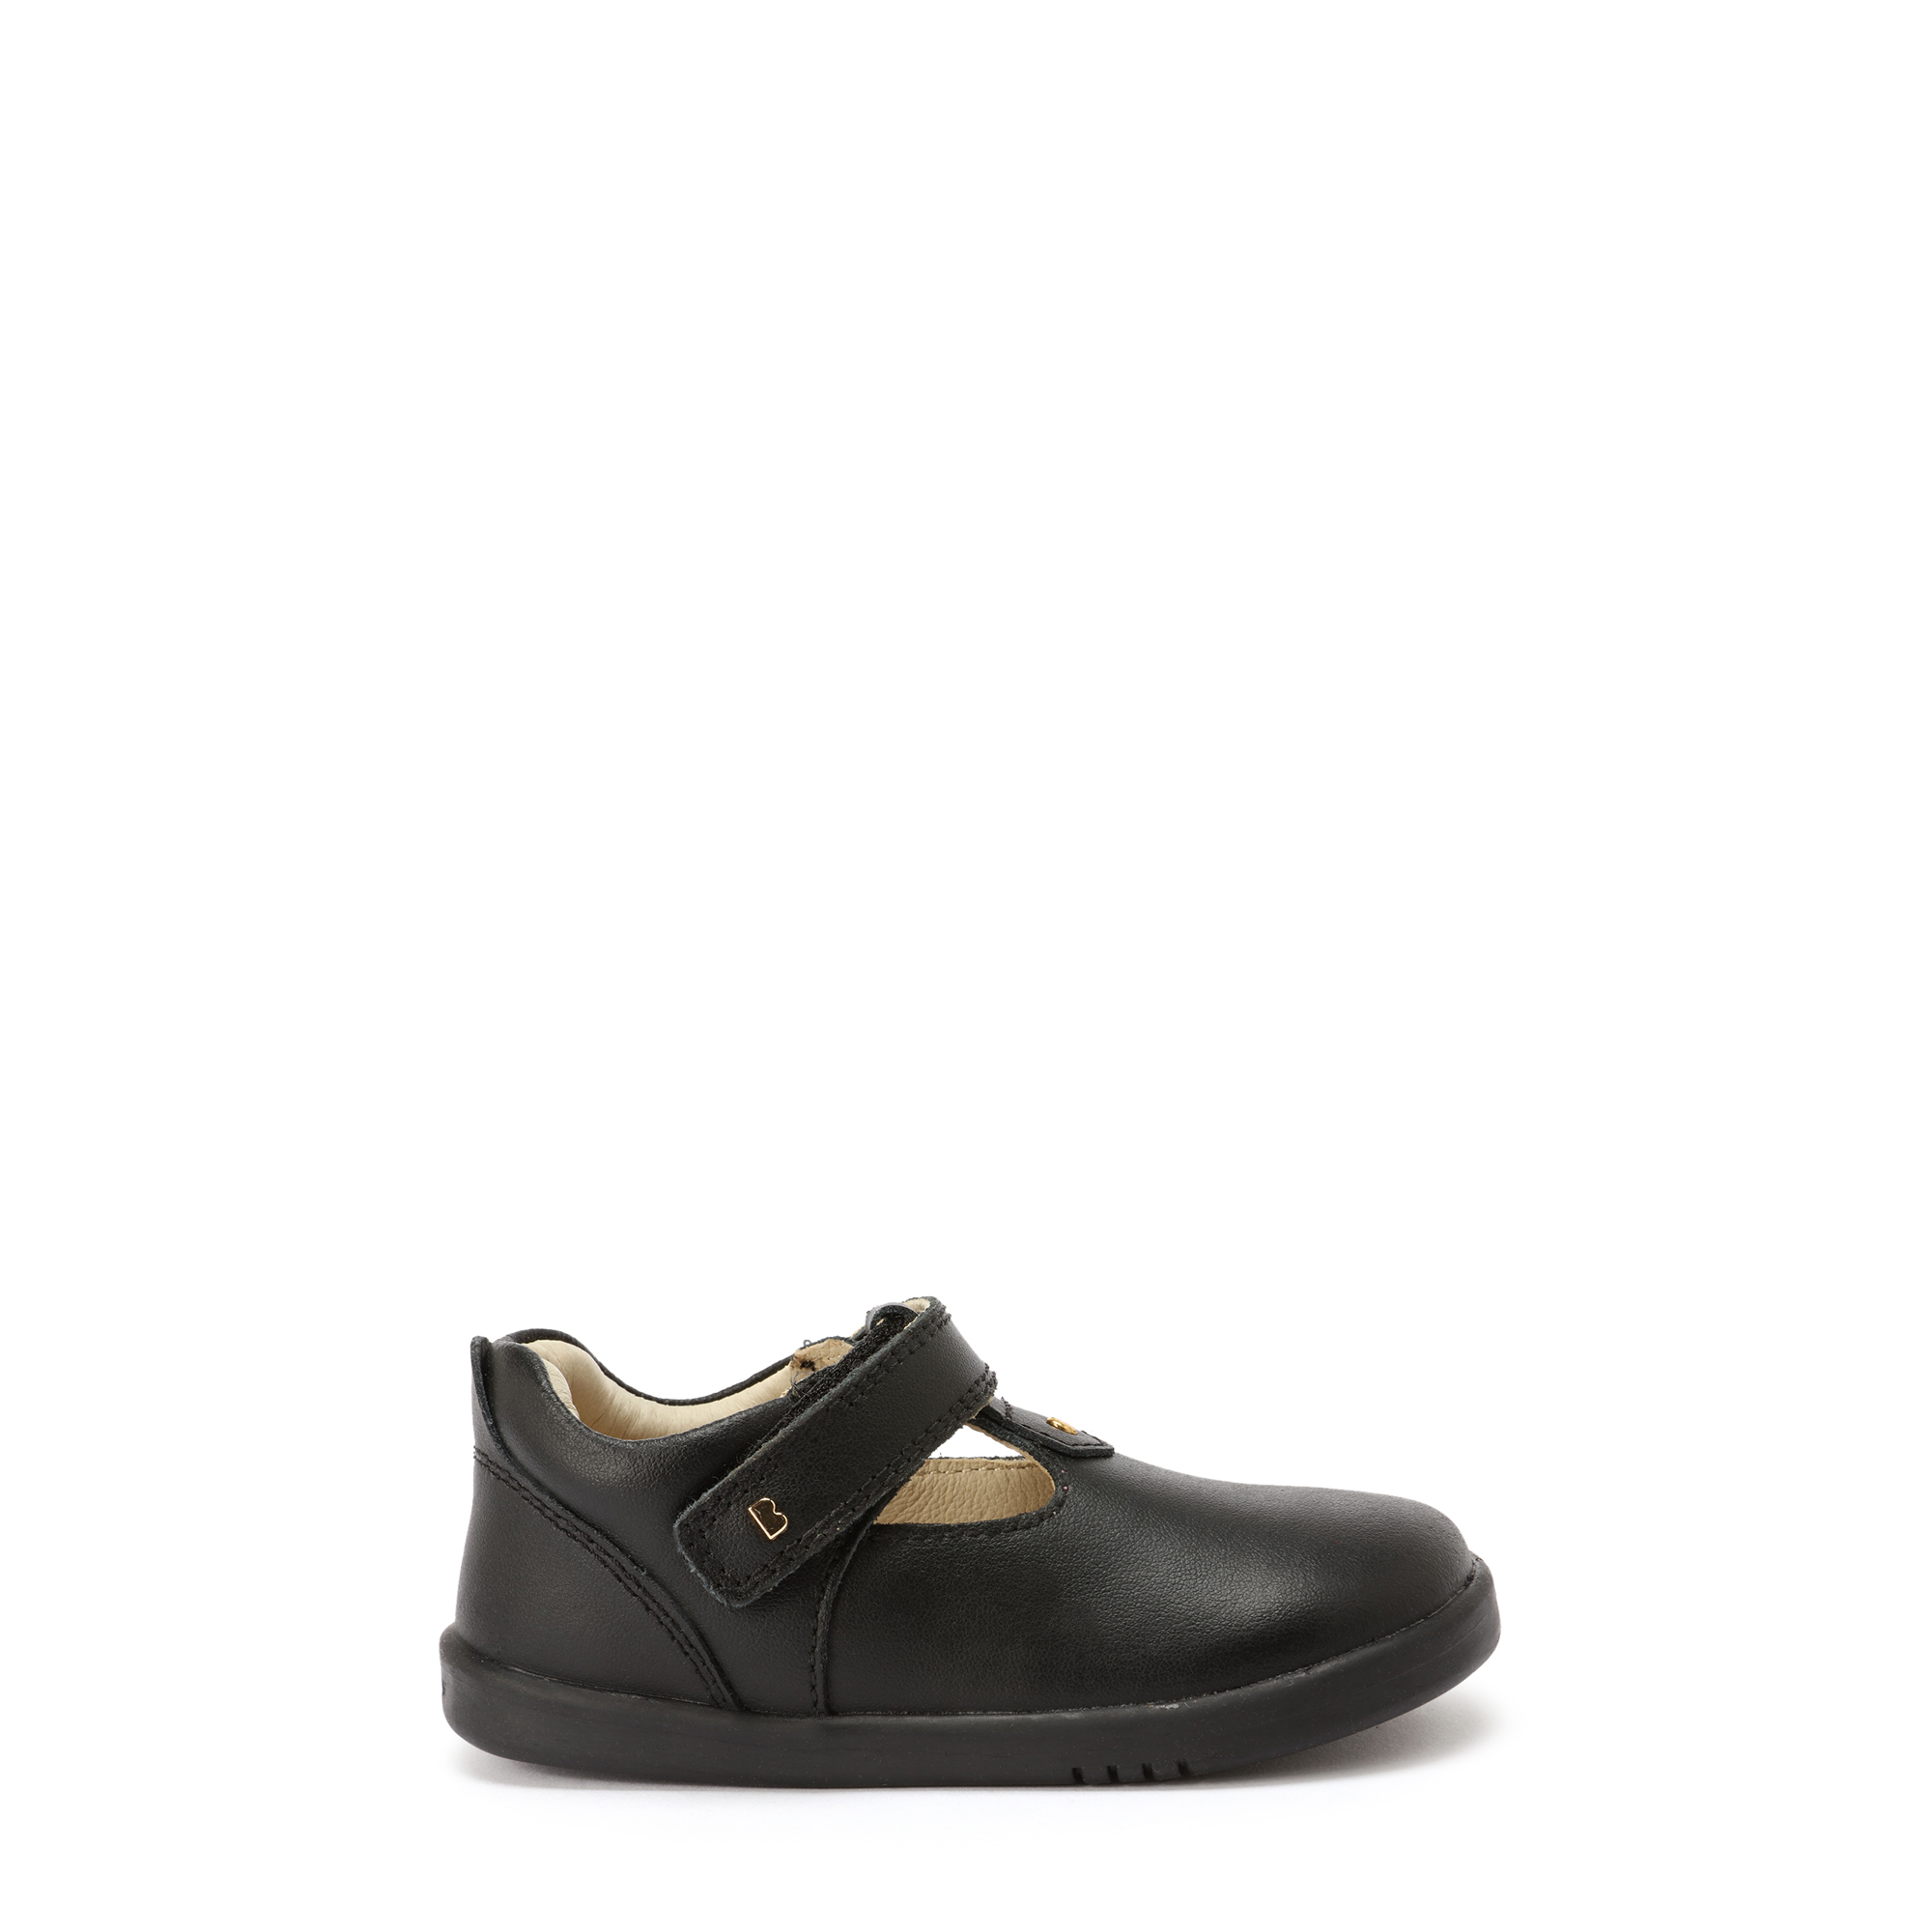 Louise shoes